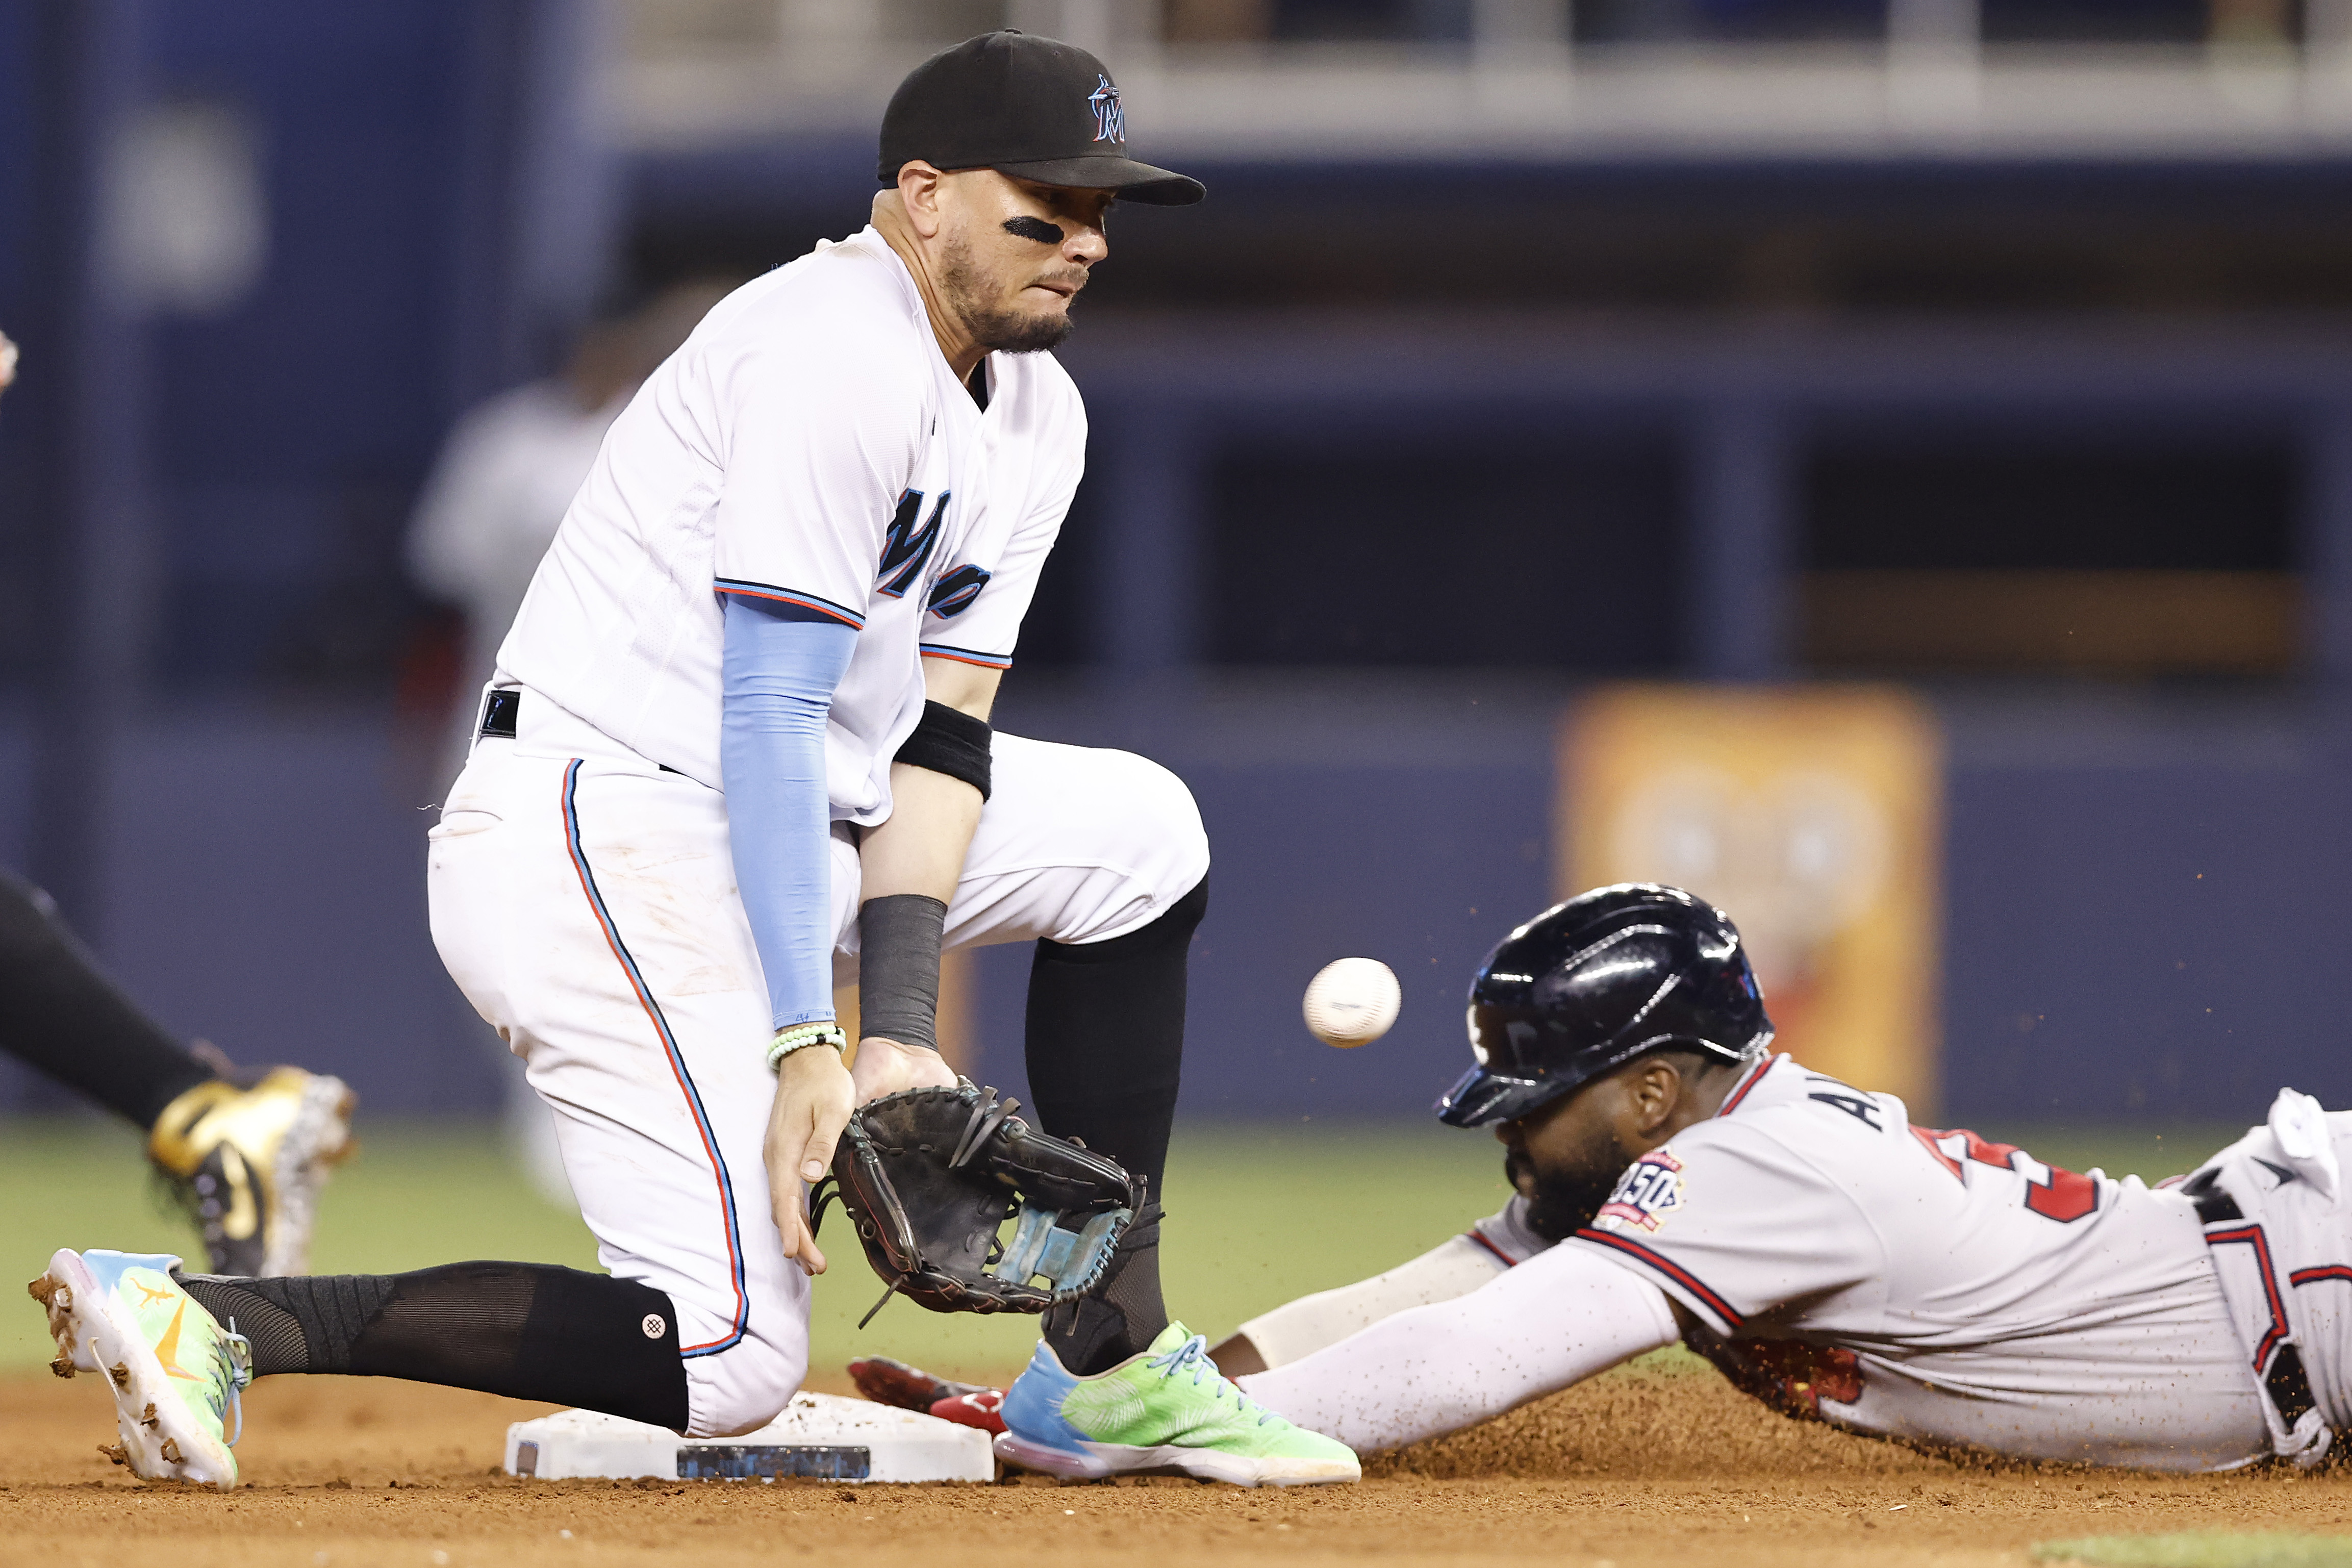 Abraham Almonte #34 of the Atlanta Braves slides safely past the tag of Miguel Rojas #19 of the Miami Marlins after stealing second base during the eighth inning at loanDepot park